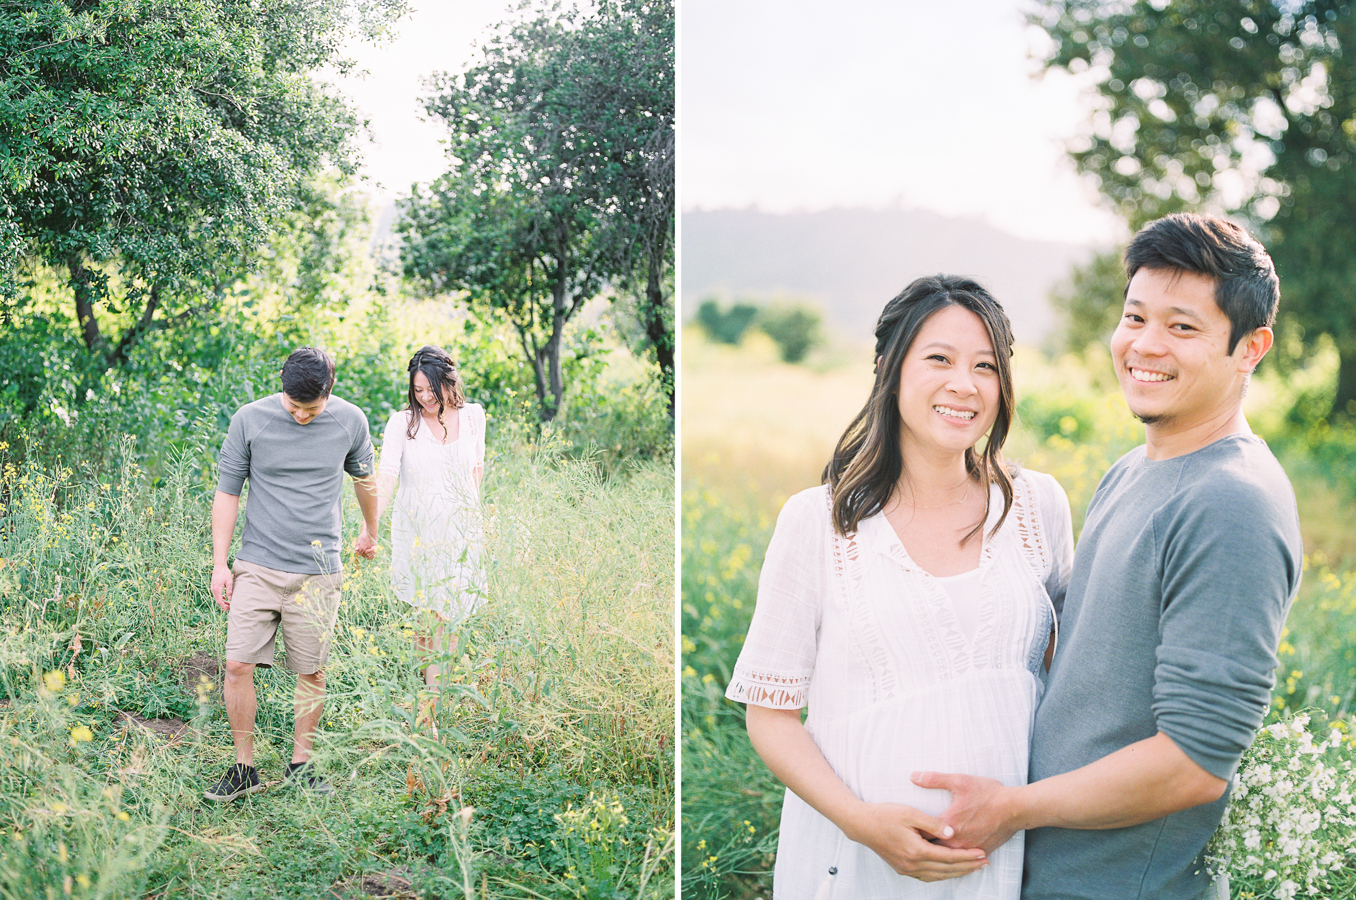 Maternity_Session_Family_Film_Photographer_Flower_Field_Los_Angeles_AKP-8.jpg